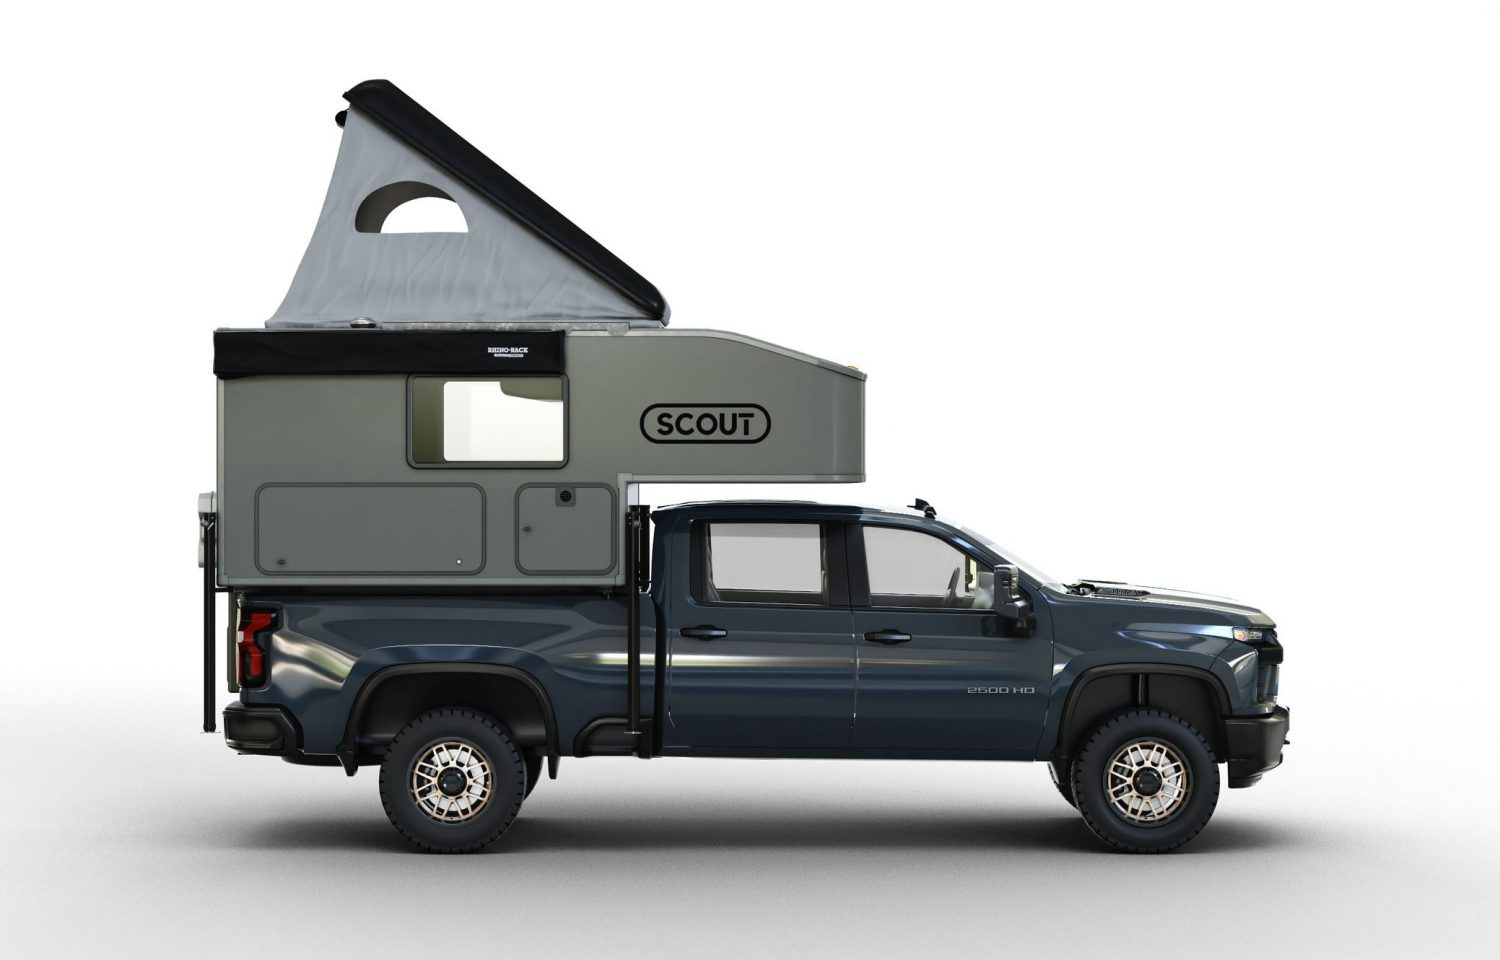 Scout Campers Kenai truck camper side view